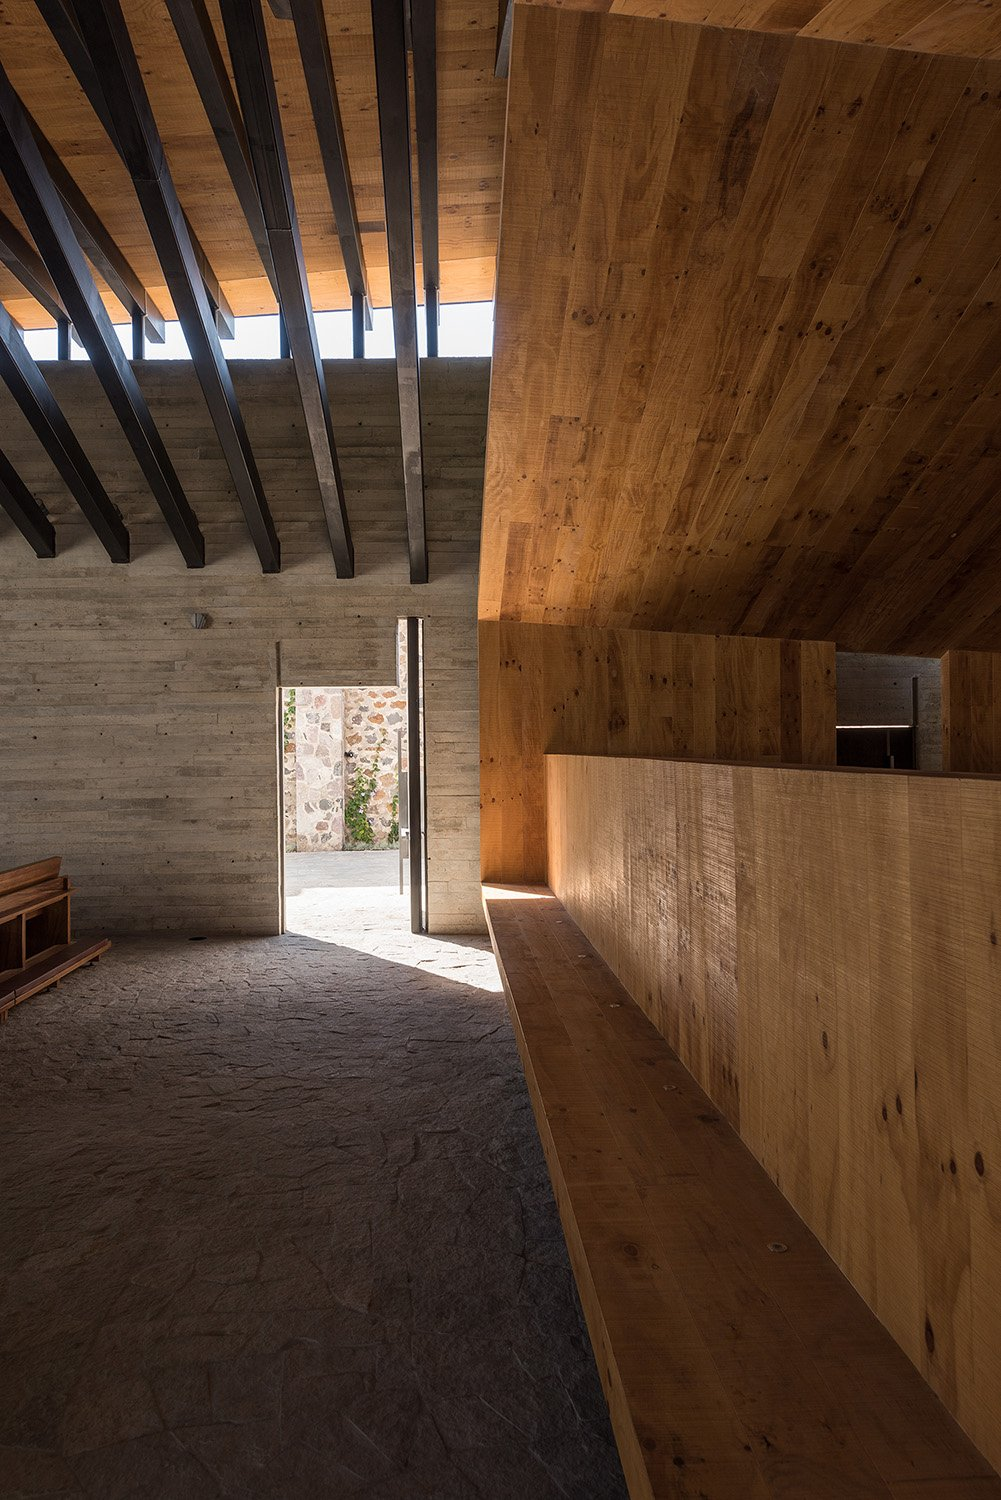 All the wooden elements were fabricated by the studio's workshop. Jaime Navarro Soto